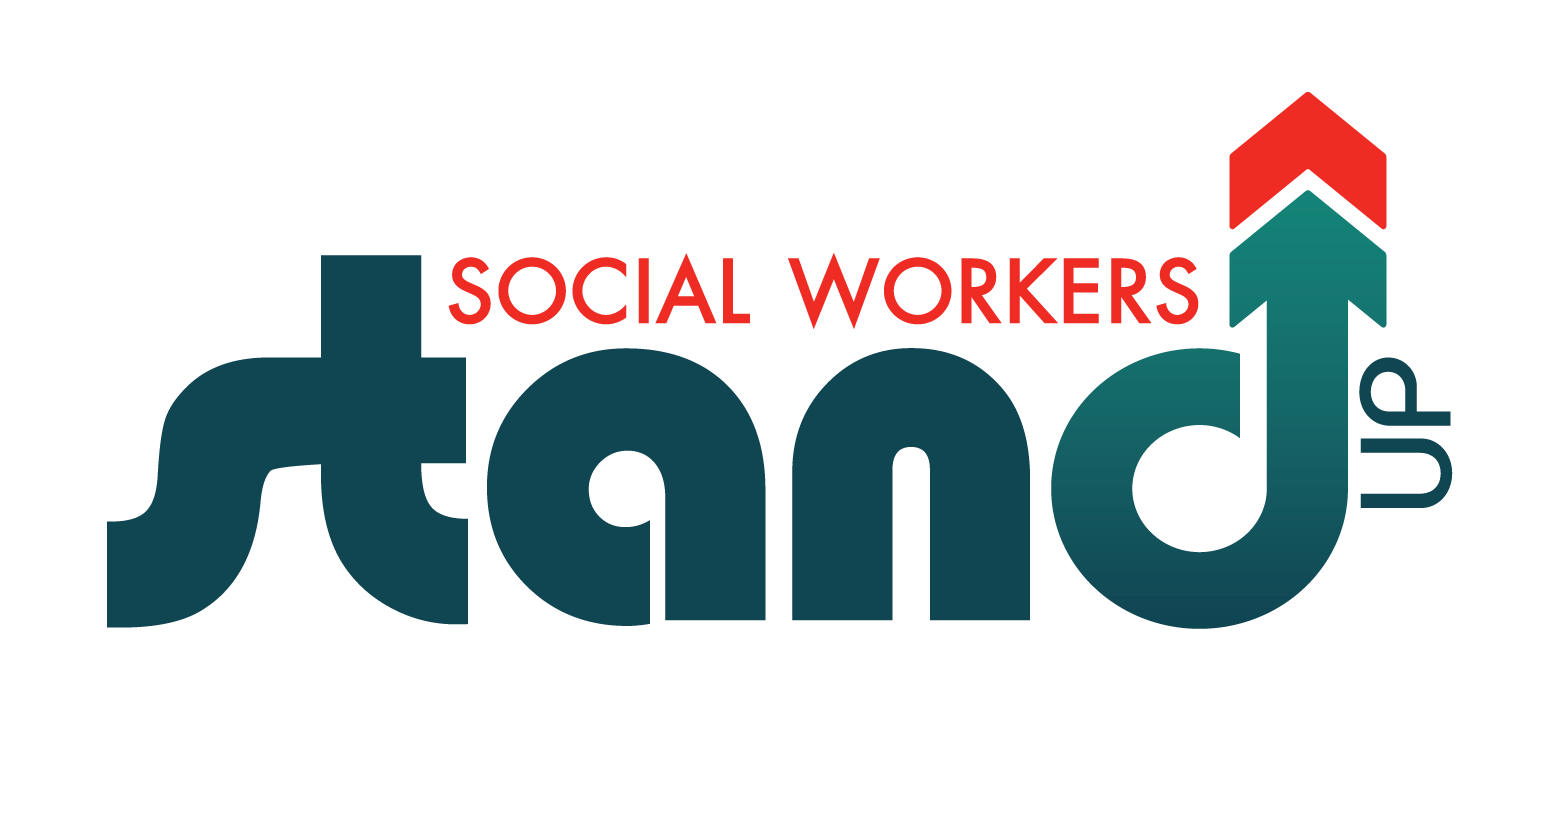 Social Workers Stand Up for Others  Family Counseling